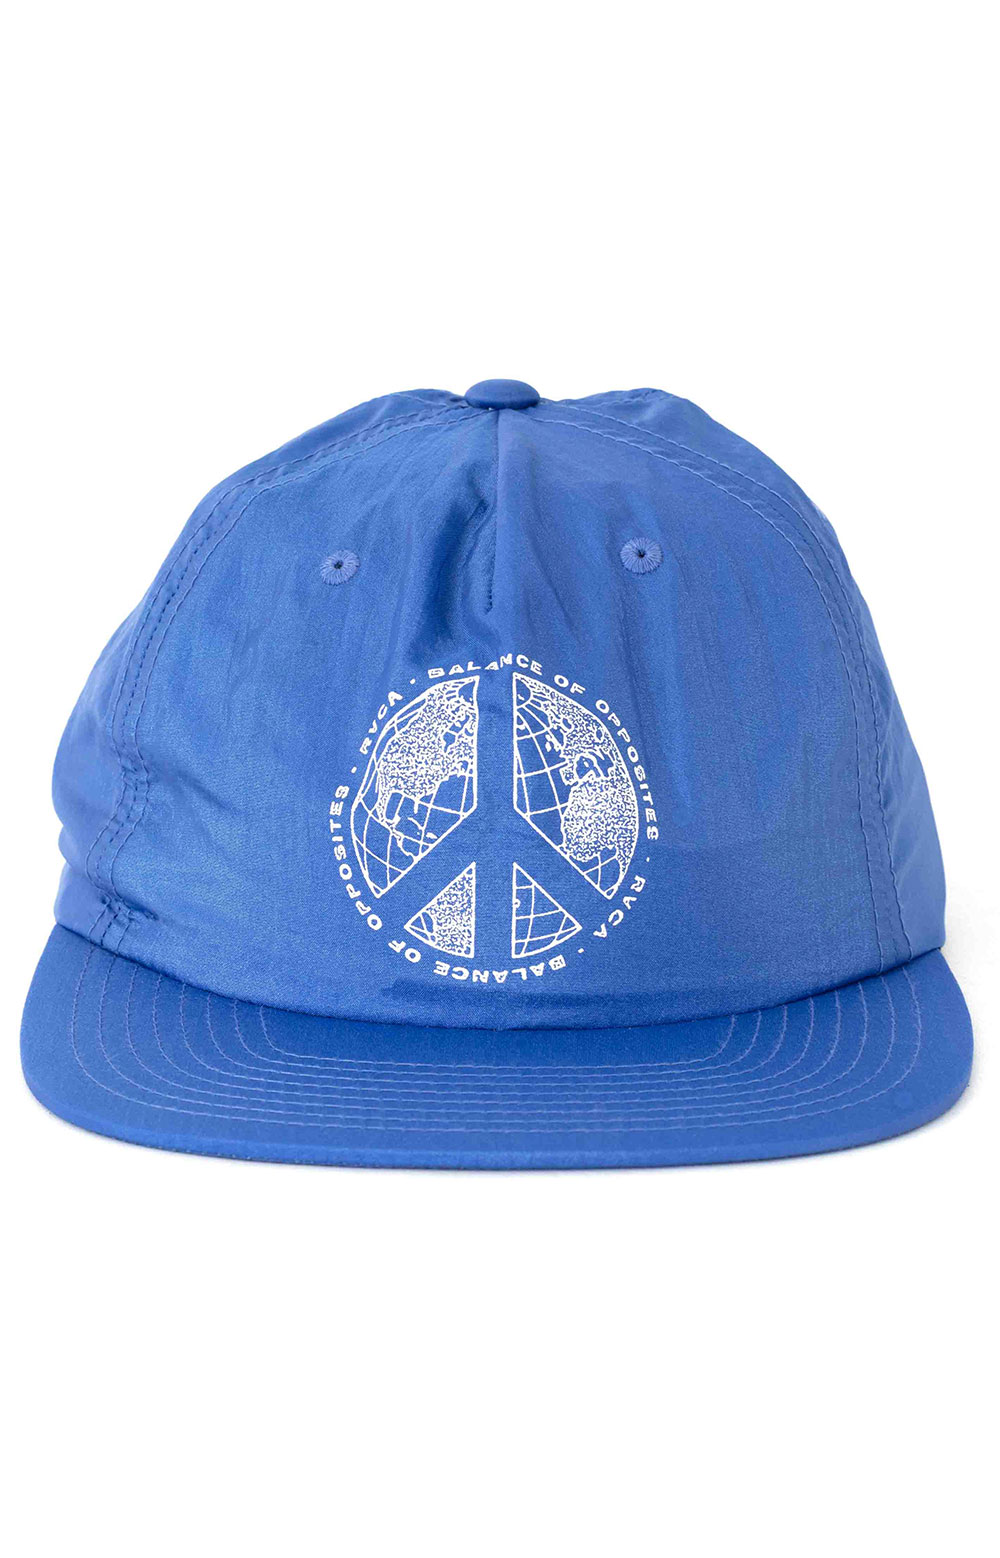 Pacifists Snap-Back Hat - Blue  2